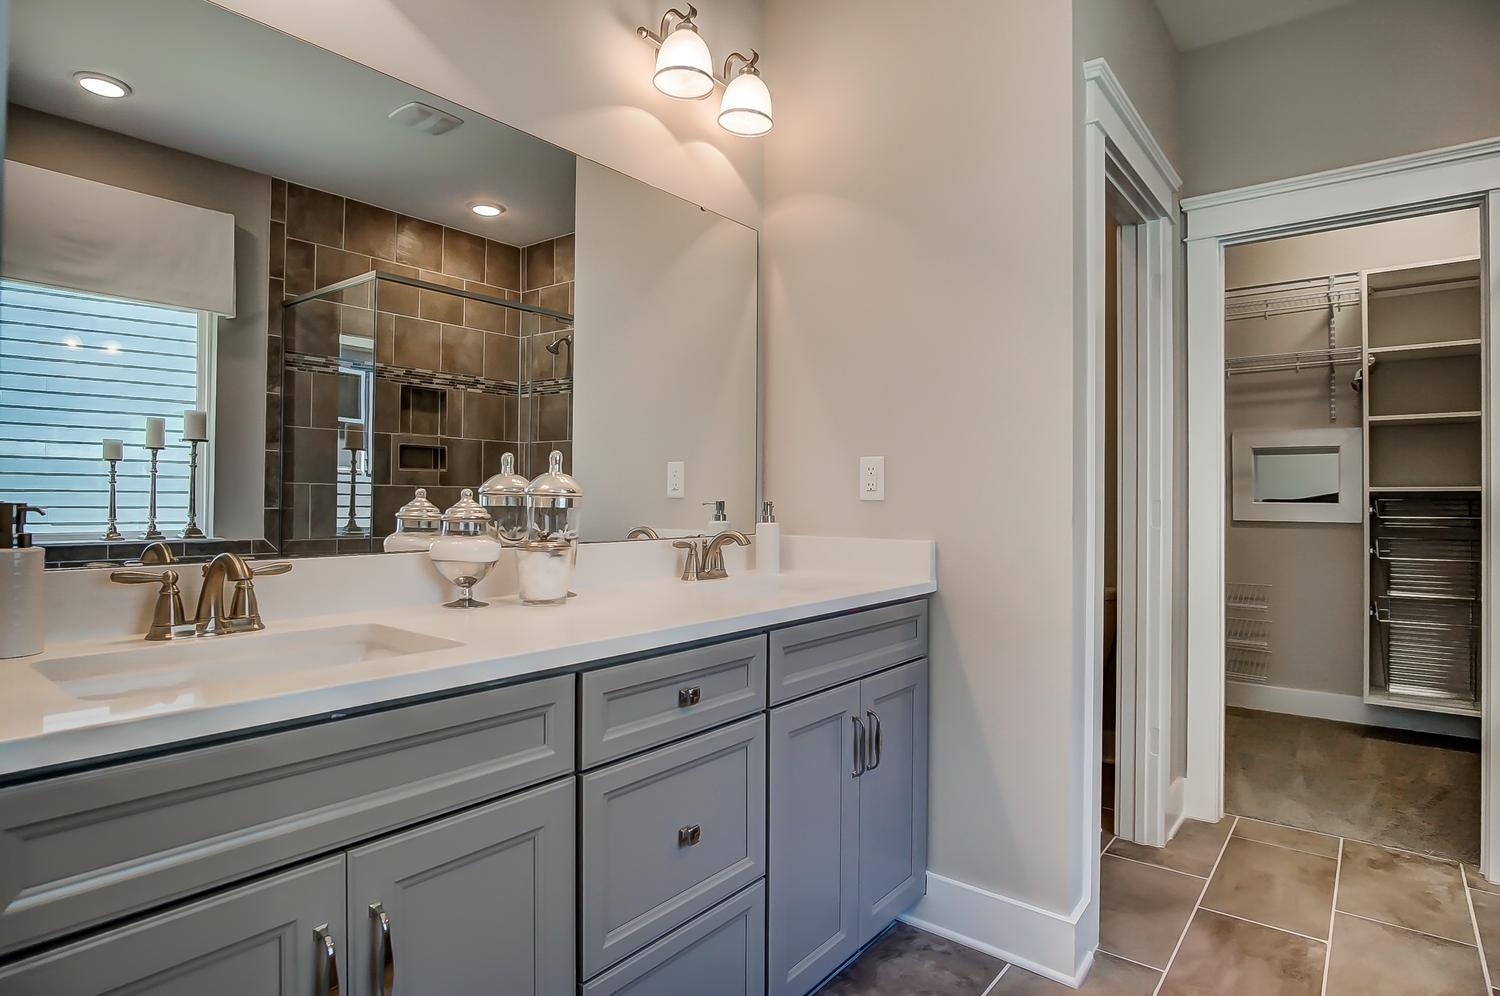 Avery Owner's Bathroom